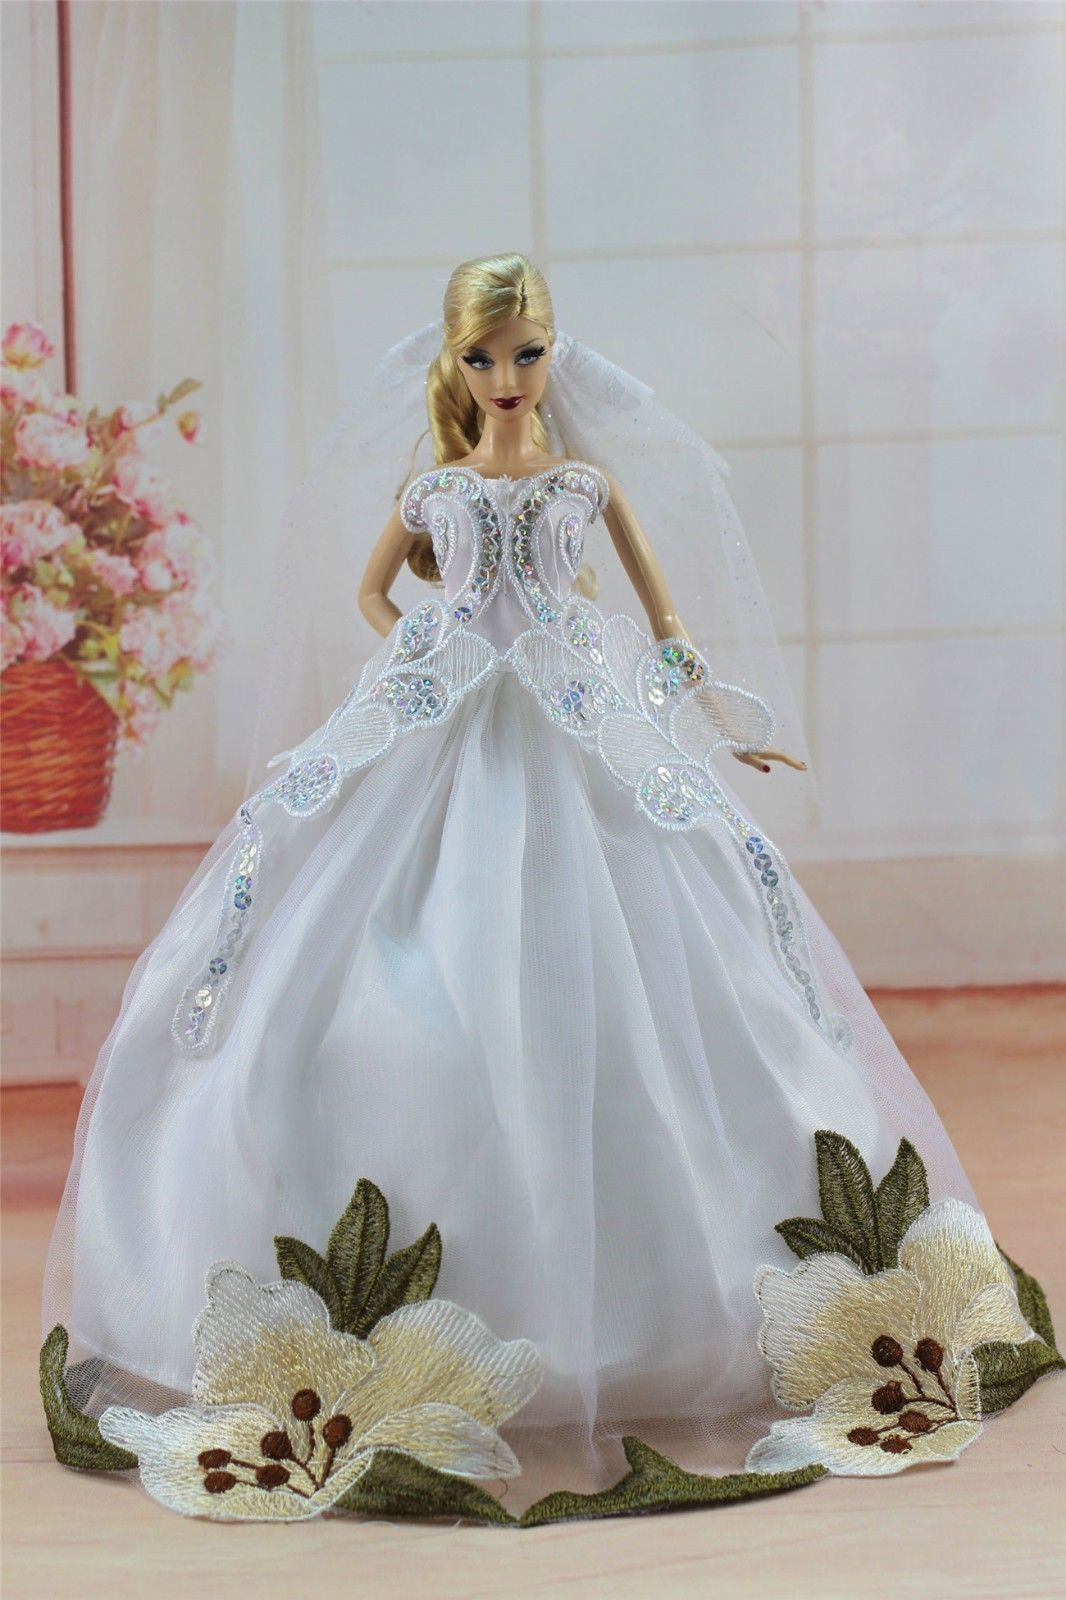 Fashion Handmade Princess Dress Wedding Clothes Gown+shawl for 11.5in.Doll #03